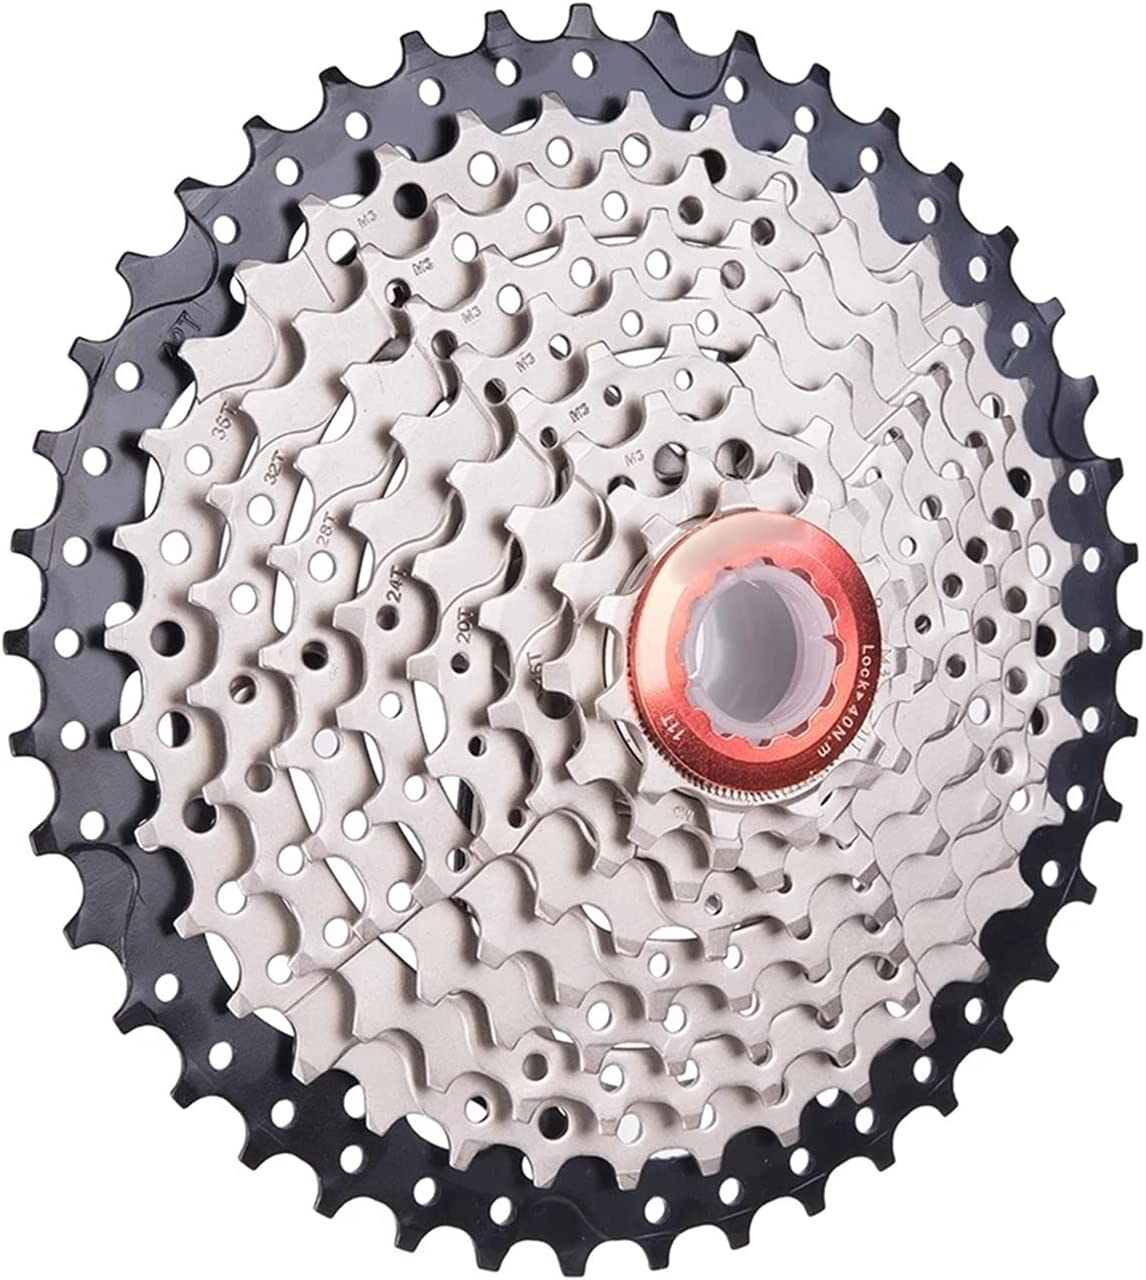 XCSM Free shipping on posting reviews MTB Bike 9 Speed 11-42T Cassette 42T Limited price Wide Steel Fr Ratio 9S